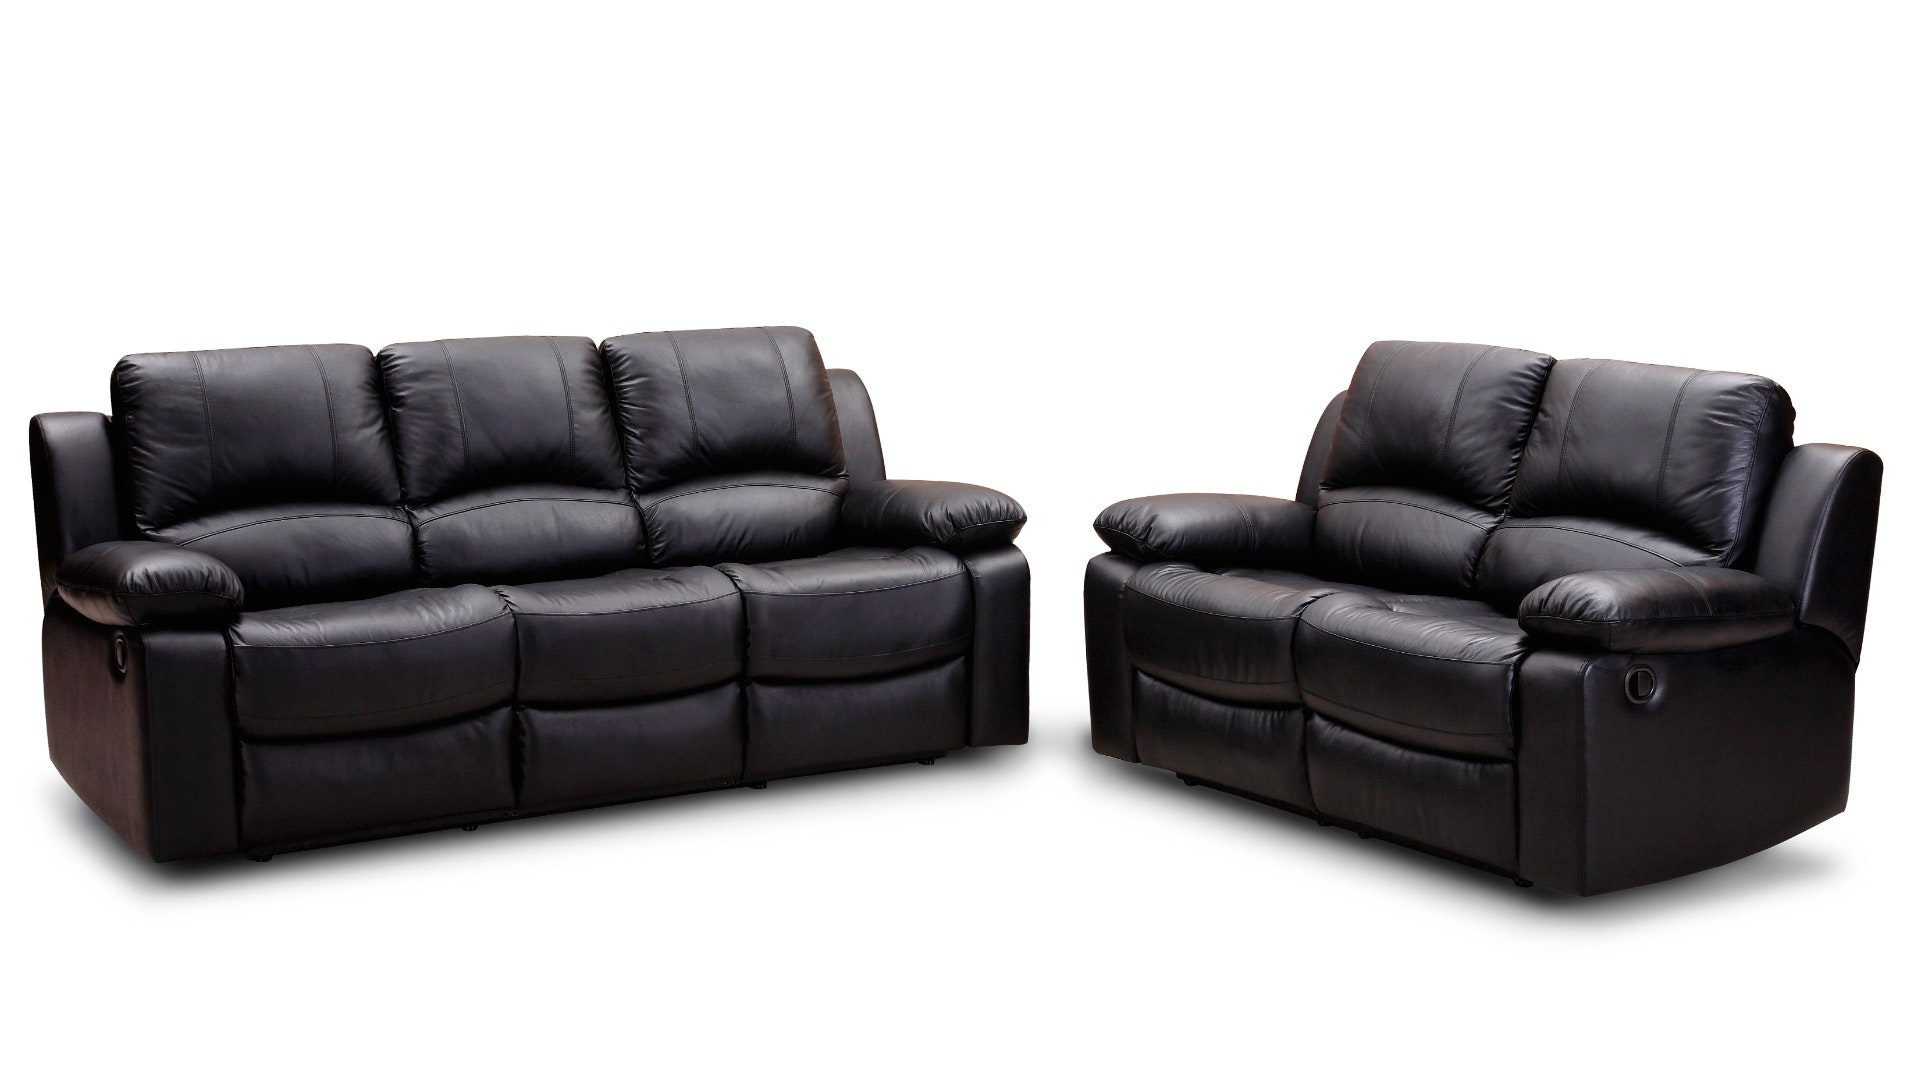 Black Leather Padded Cushion Couch Near To Black Leather Padded